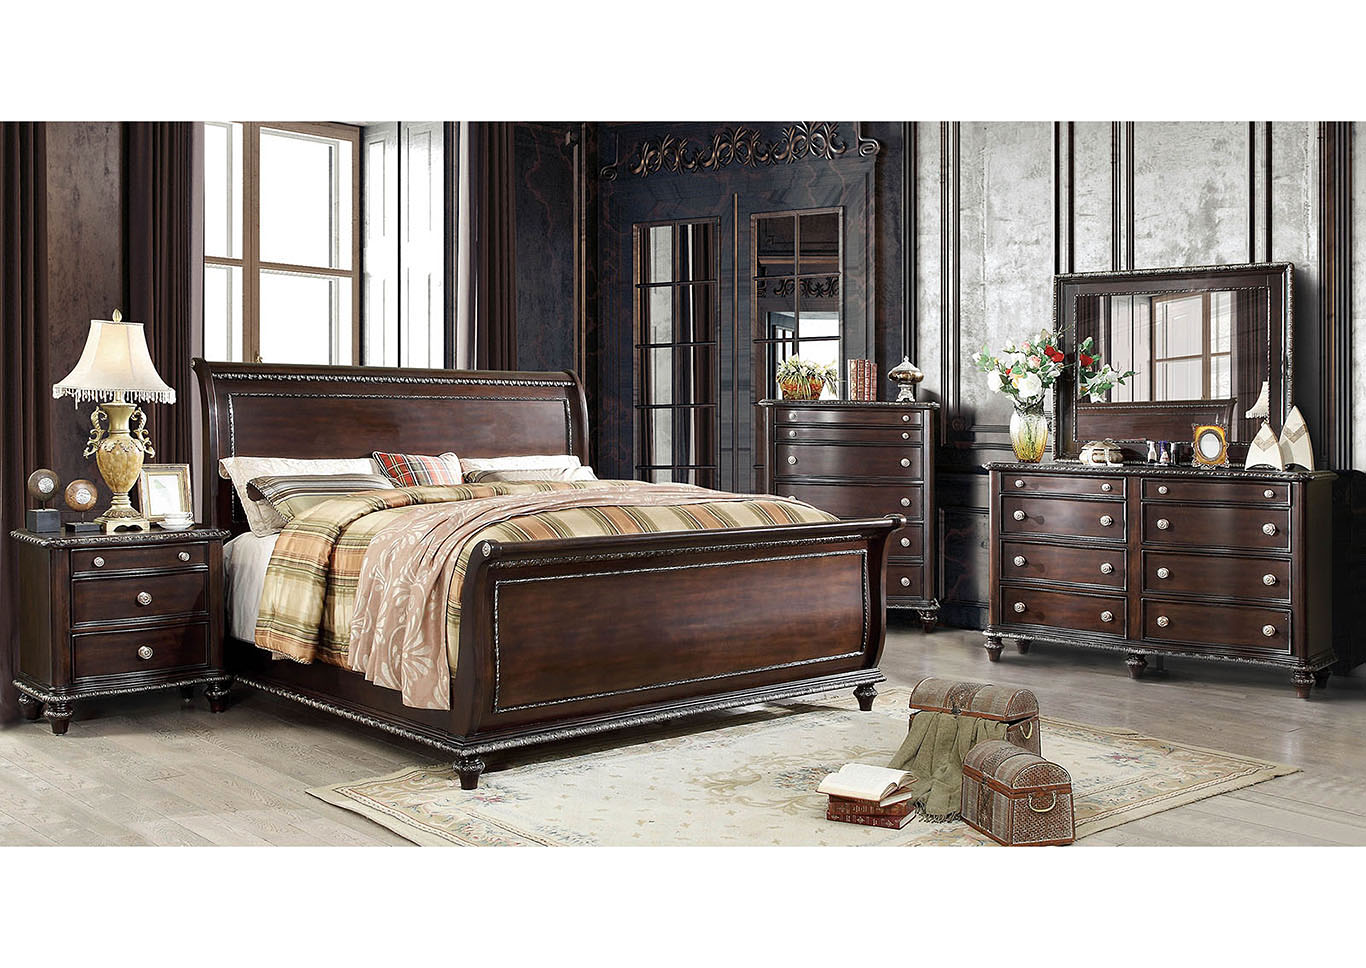 Europa Espresso Queen Sleigh Bed,Furniture of America